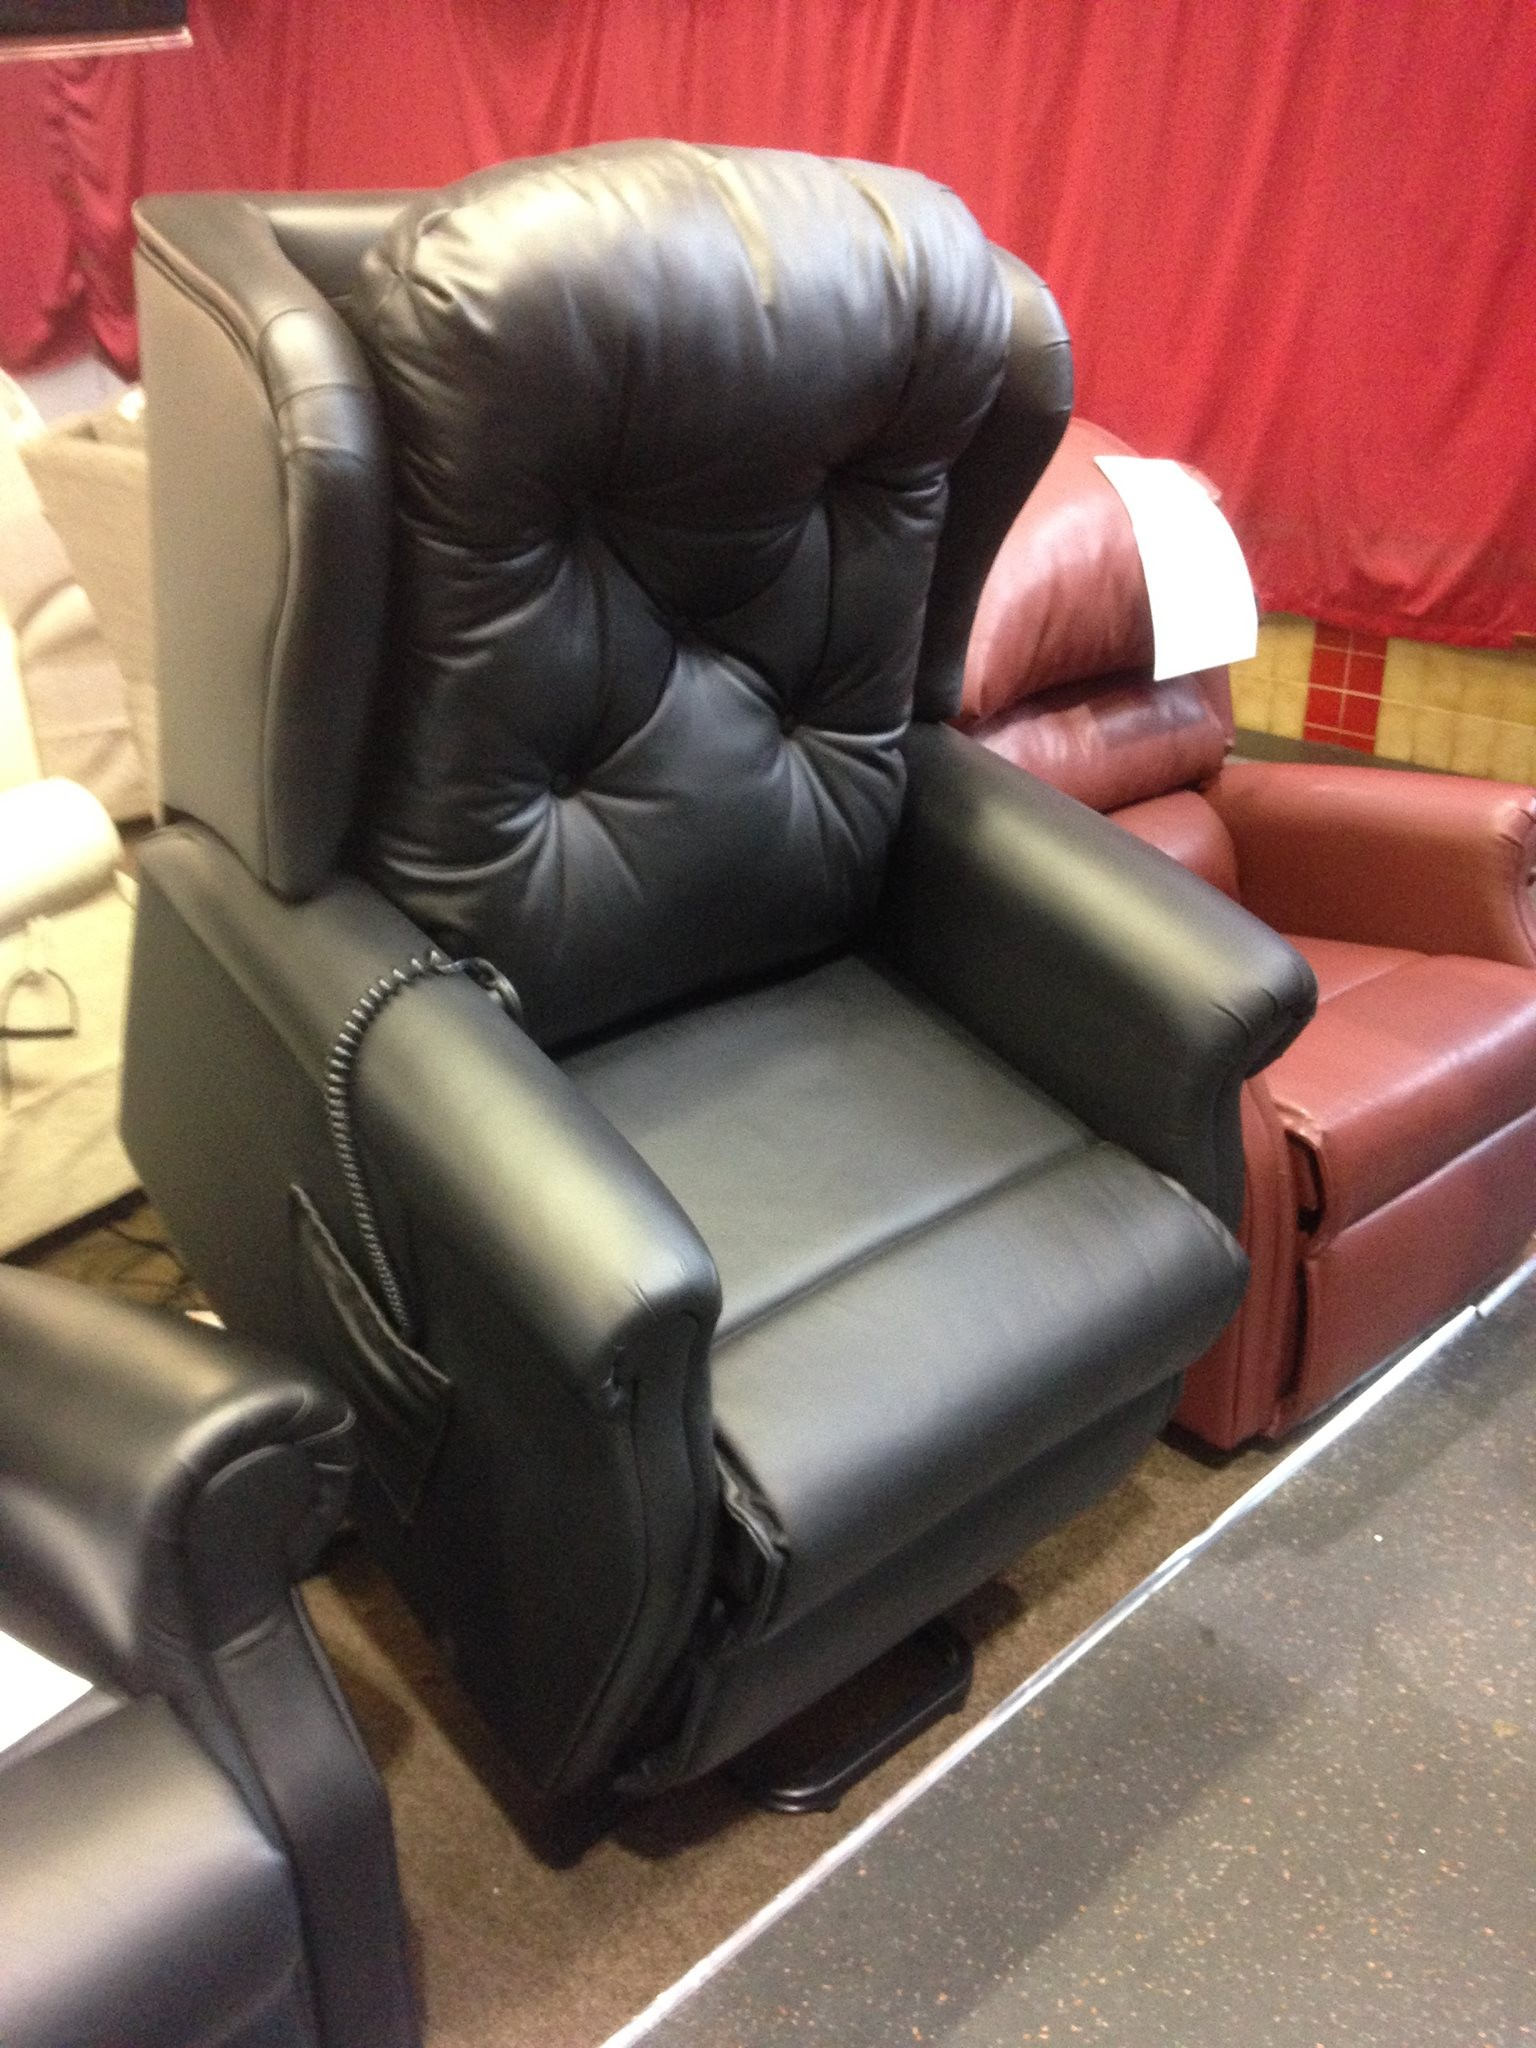 ... leather dual motor riser recliner chair. it is Brand new real leather button-back it is priced at £675 with 12 month guarantee. free delivery within ... & riser recliner chairs second hand - Local Classifieds Buy and ... islam-shia.org